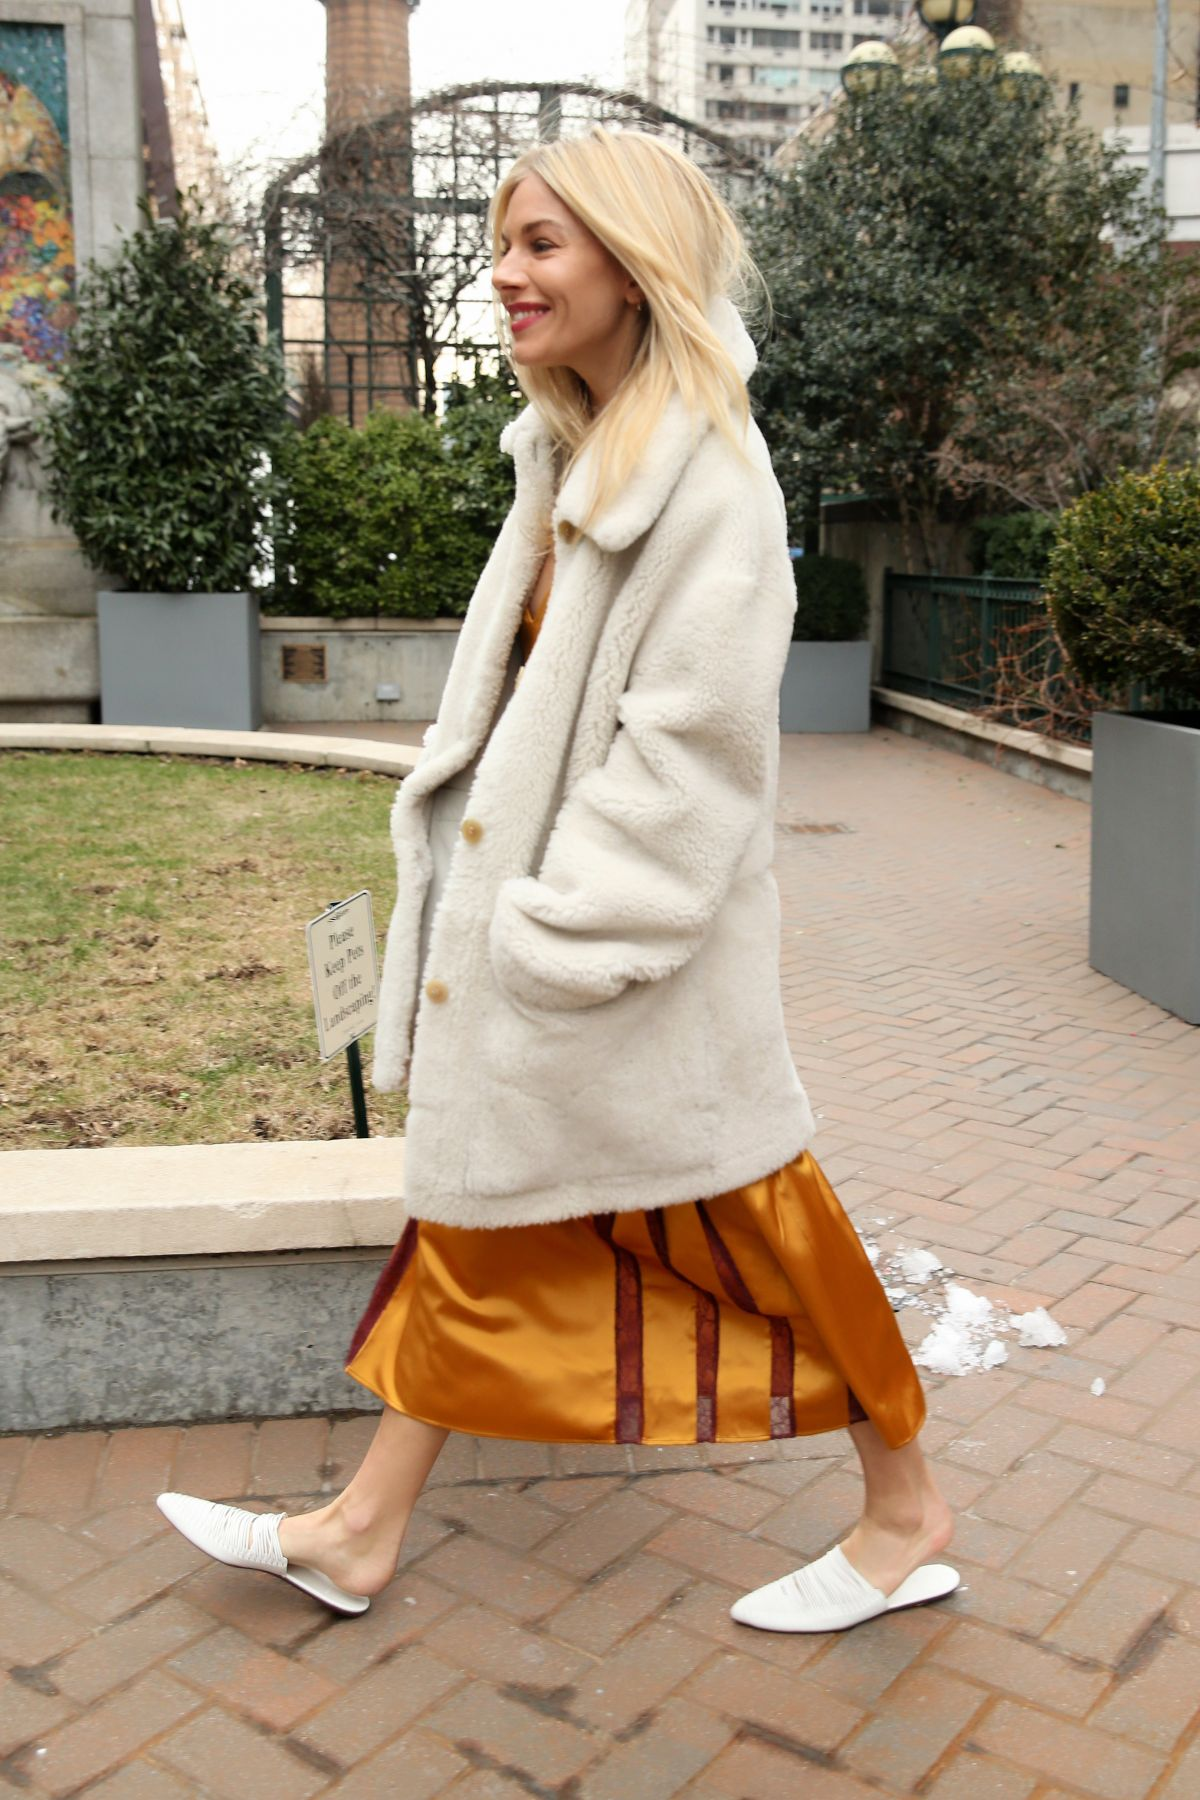 331d73d339dd SIENNA MILLER at Tory Burch Fall Winter 2018 19 Show at New York Fashion